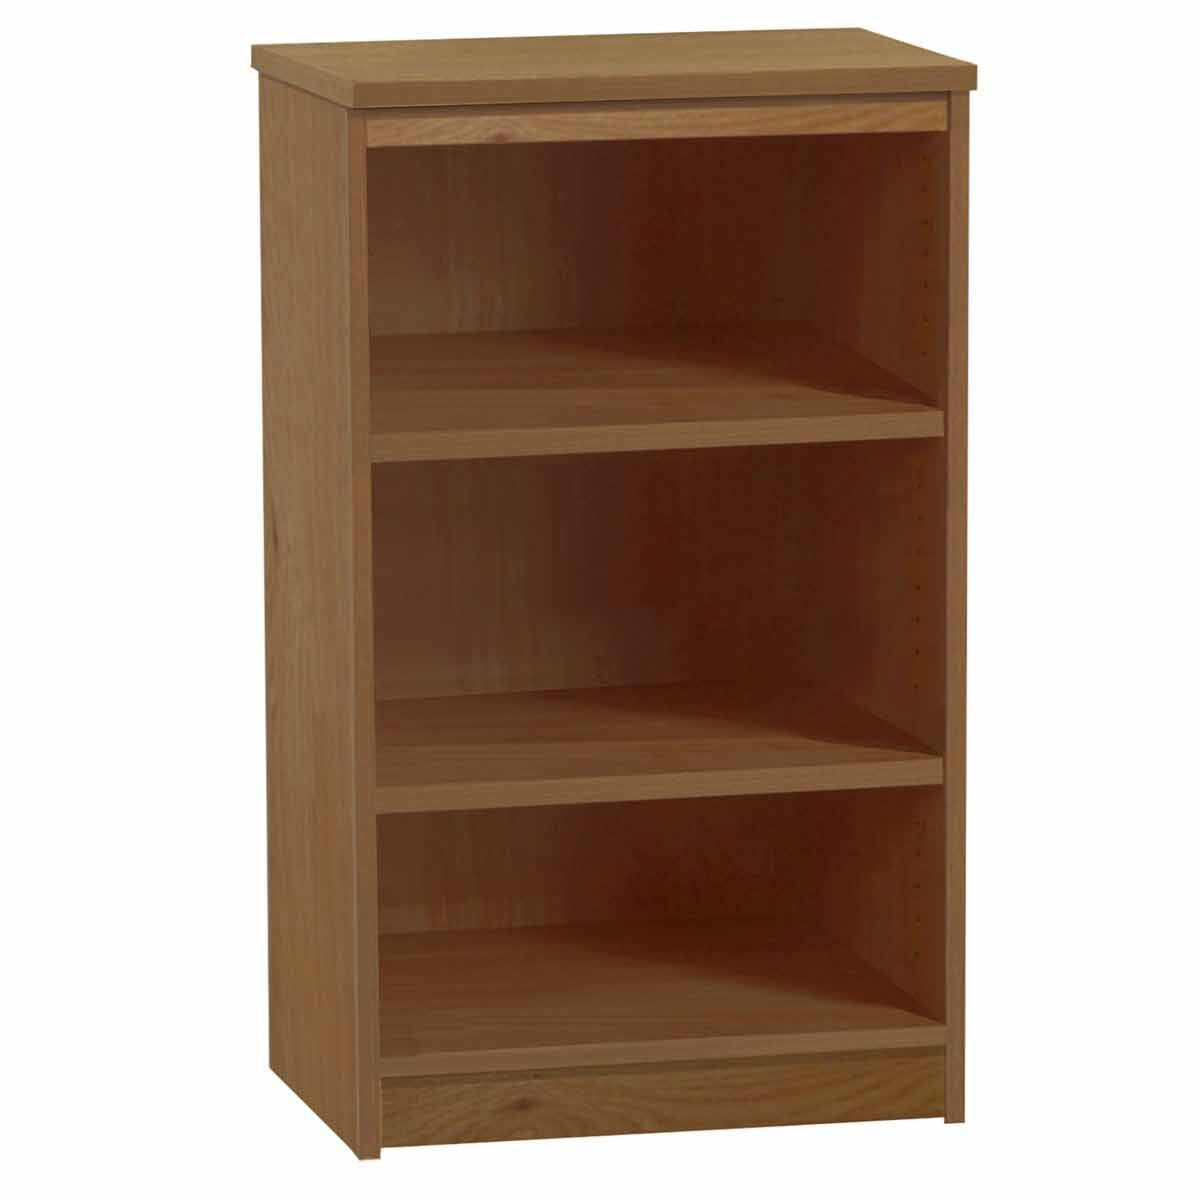 R White Mid Height Bookcase 600mm Wide English Oak